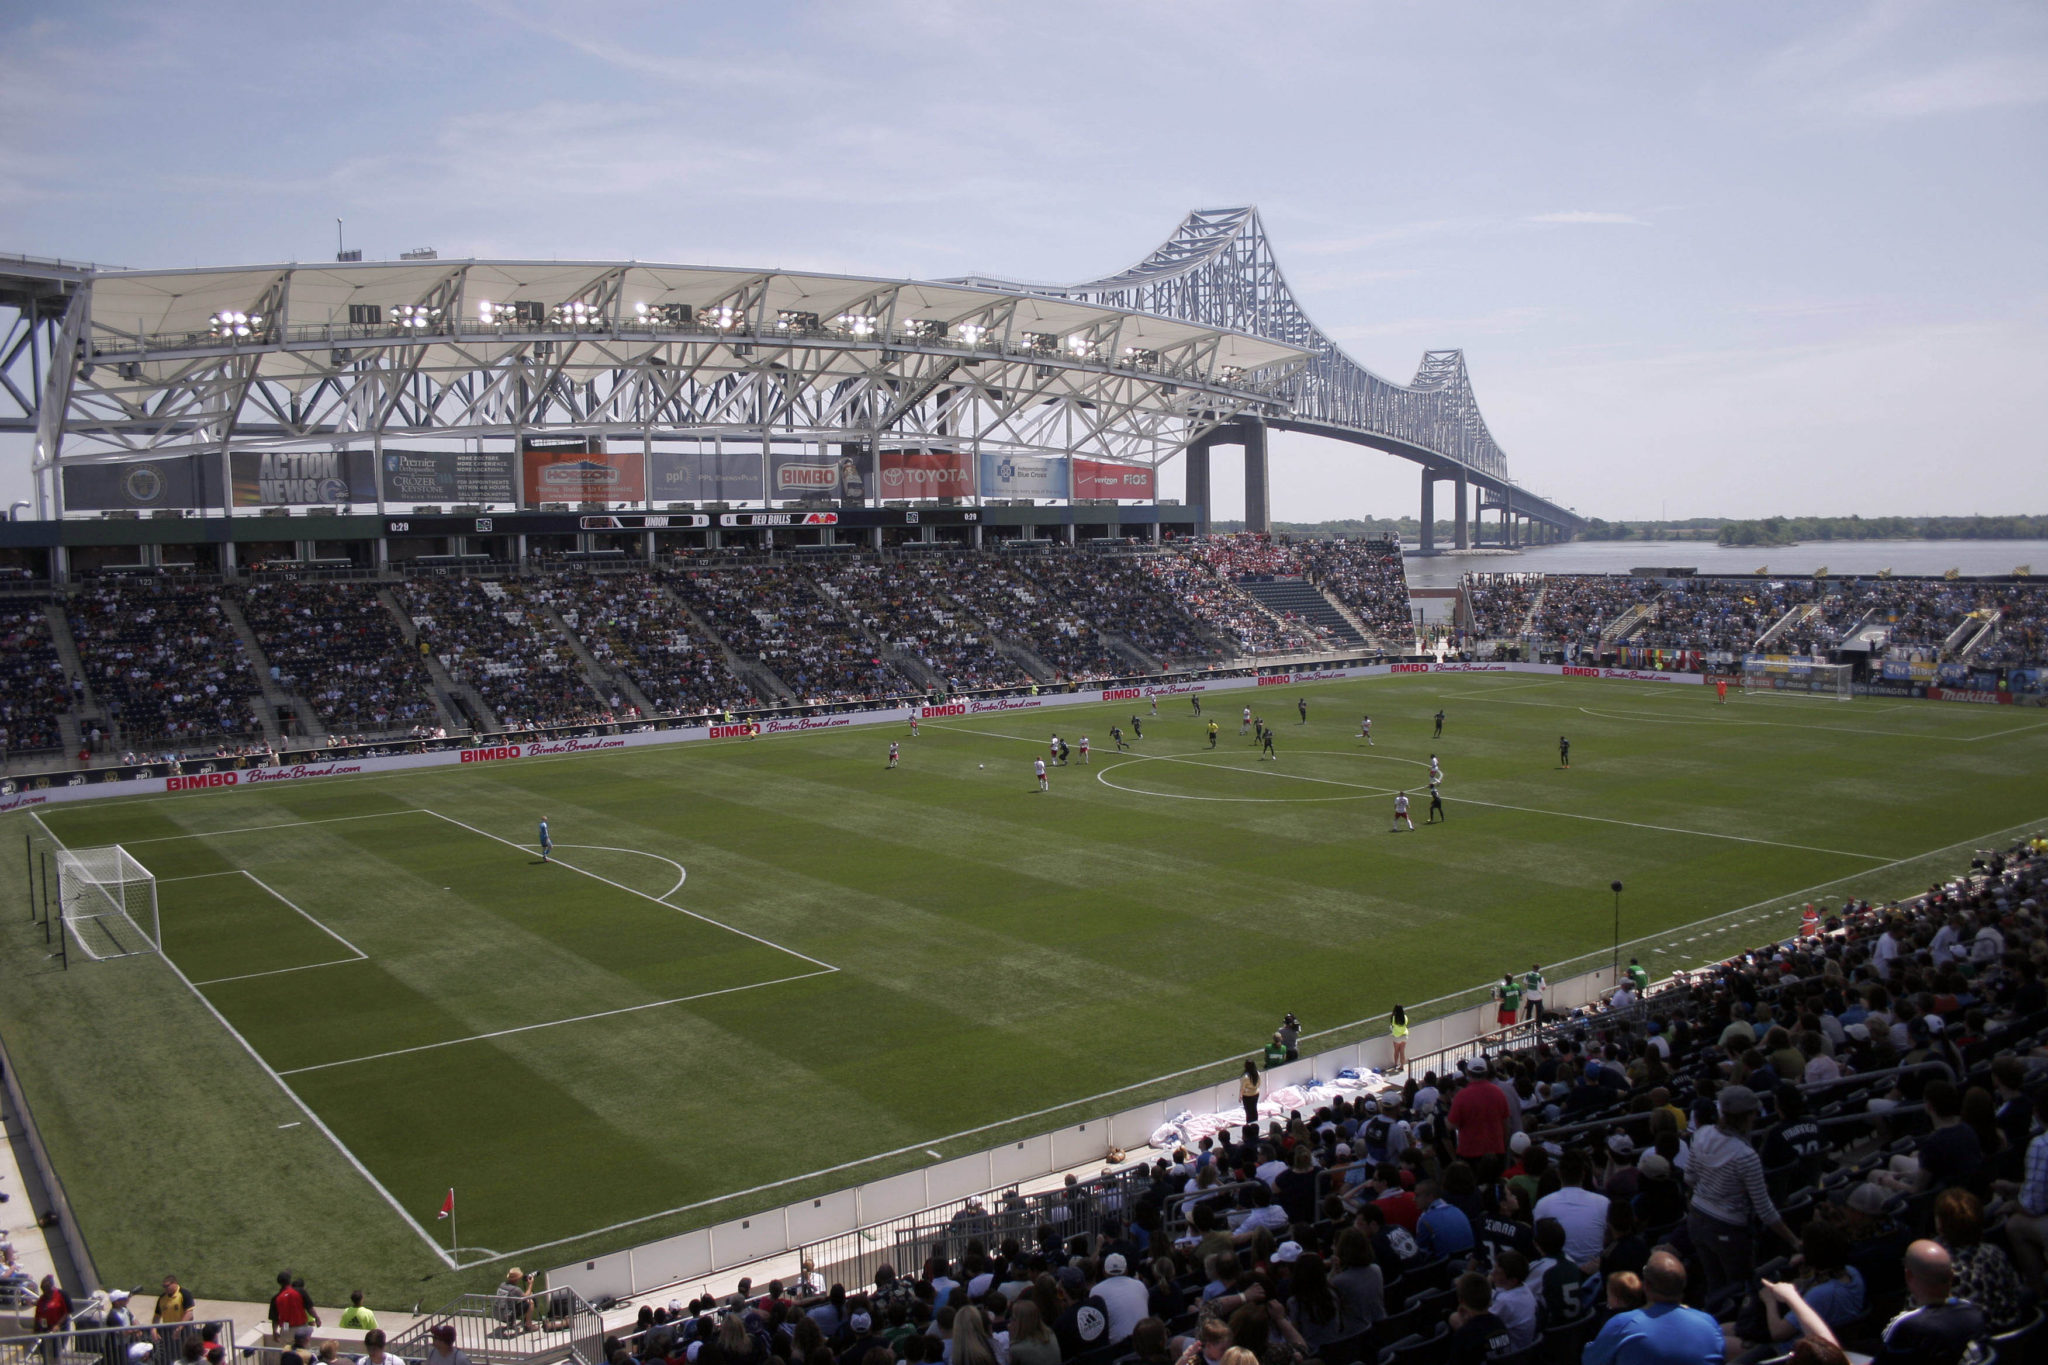 PPL Park, will host the semifinals, third-place match and final of CONCACAF Women's World Cup qualifying in October. (Credit: Joe Camporeale-US PRESSWIRE)